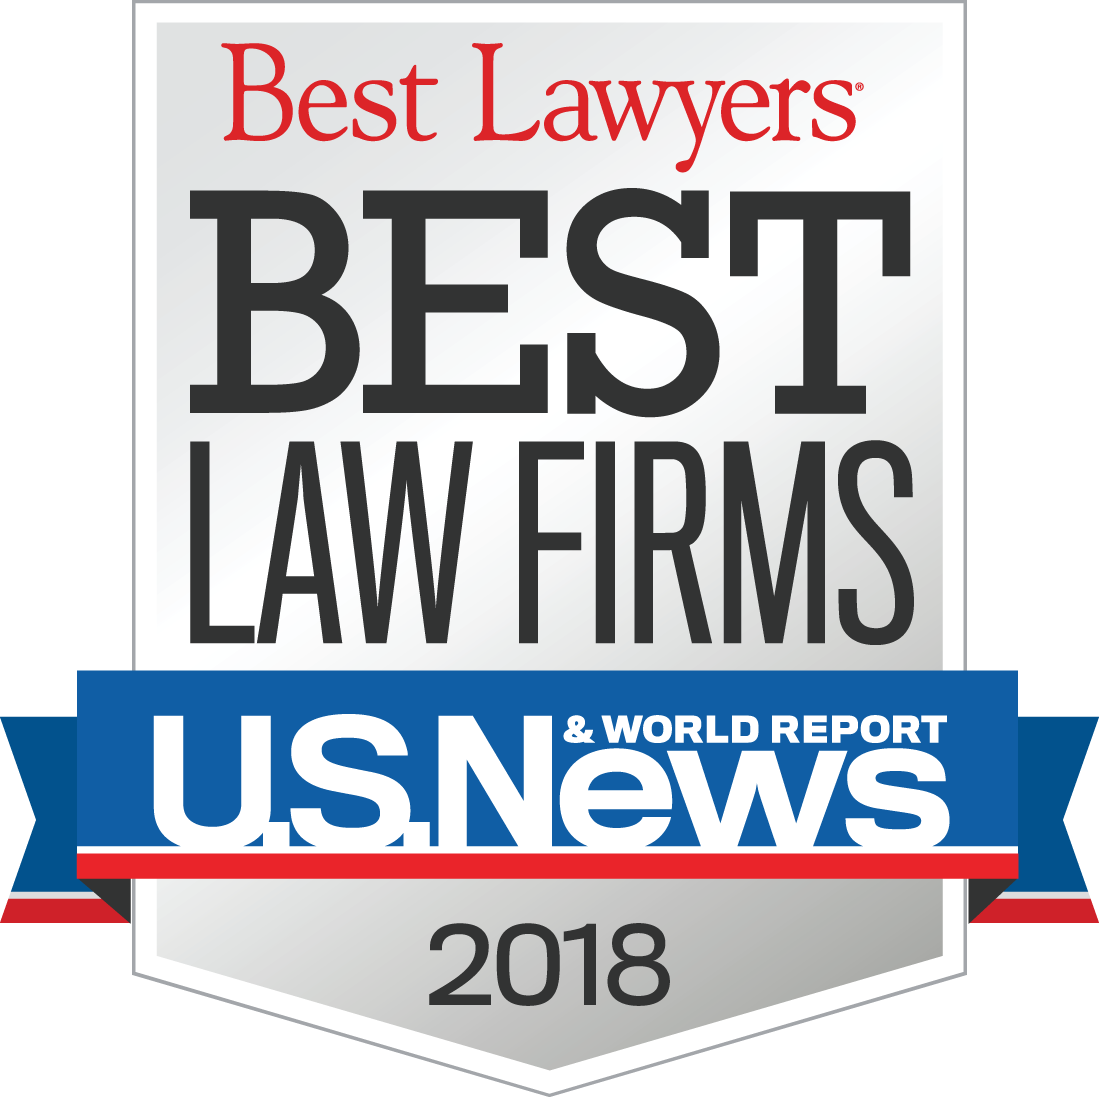 Best Law Firm 2018